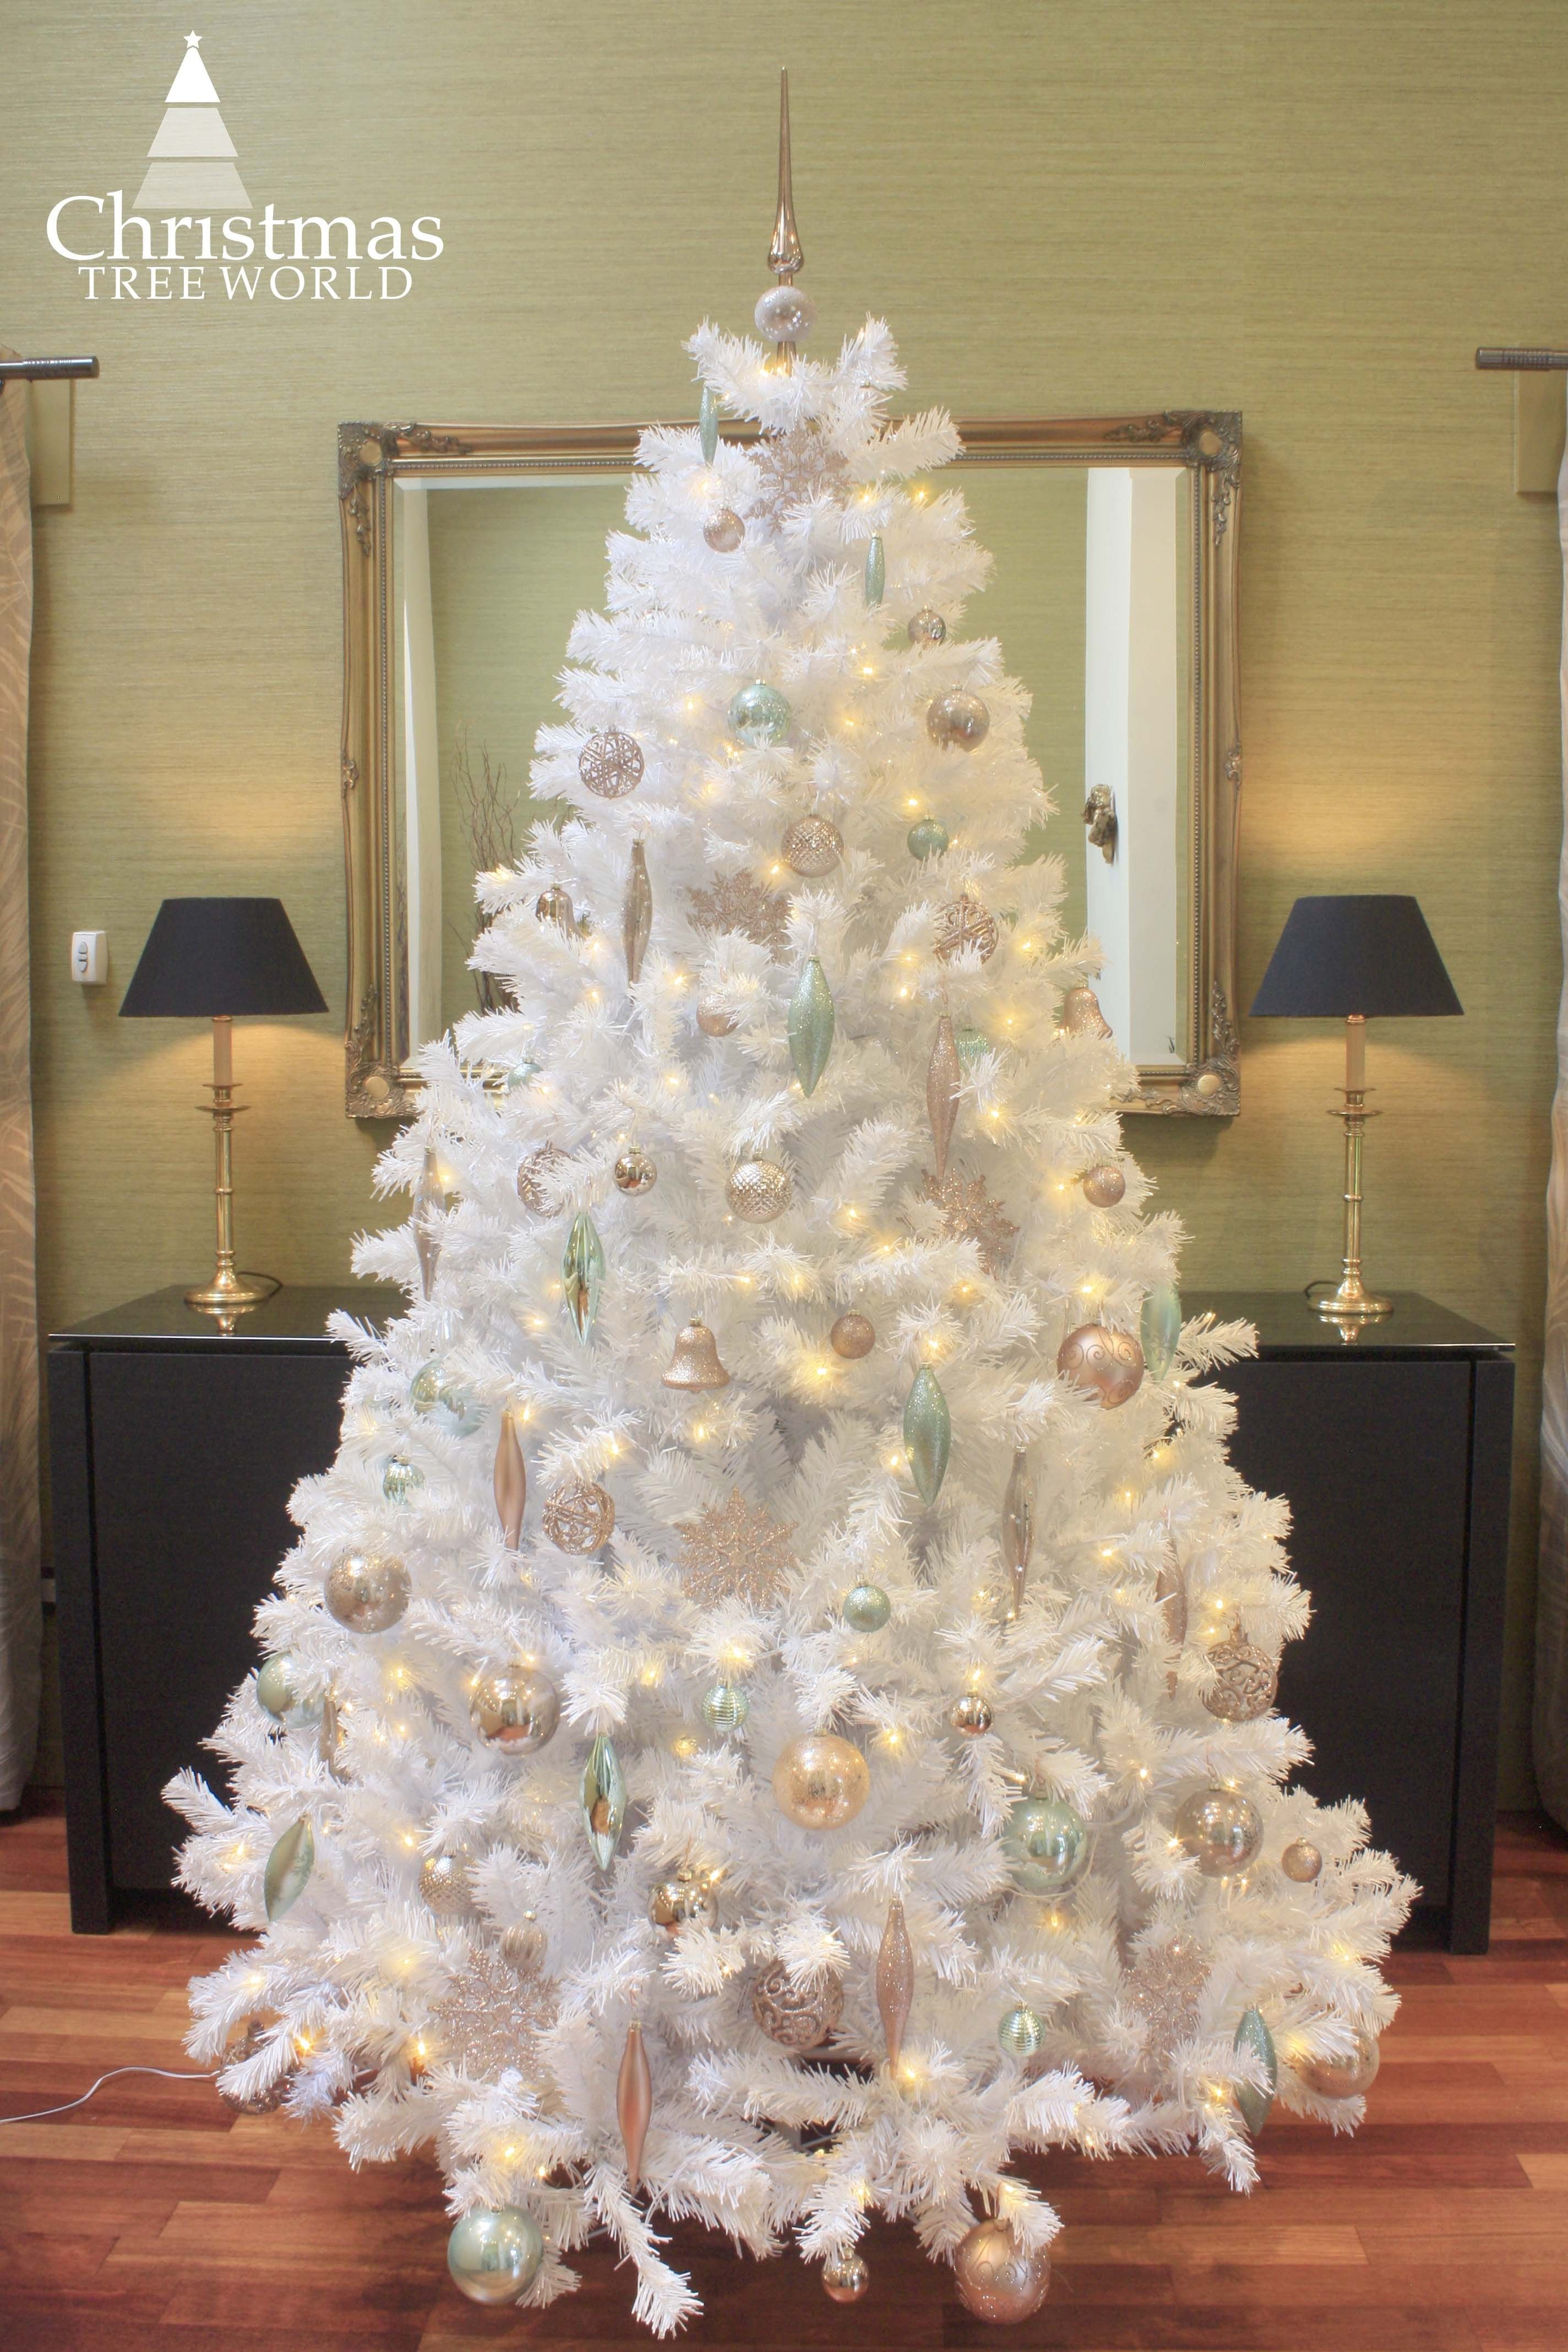 The Prelit Bianca Pine Tree with Warm White Lights (3ft